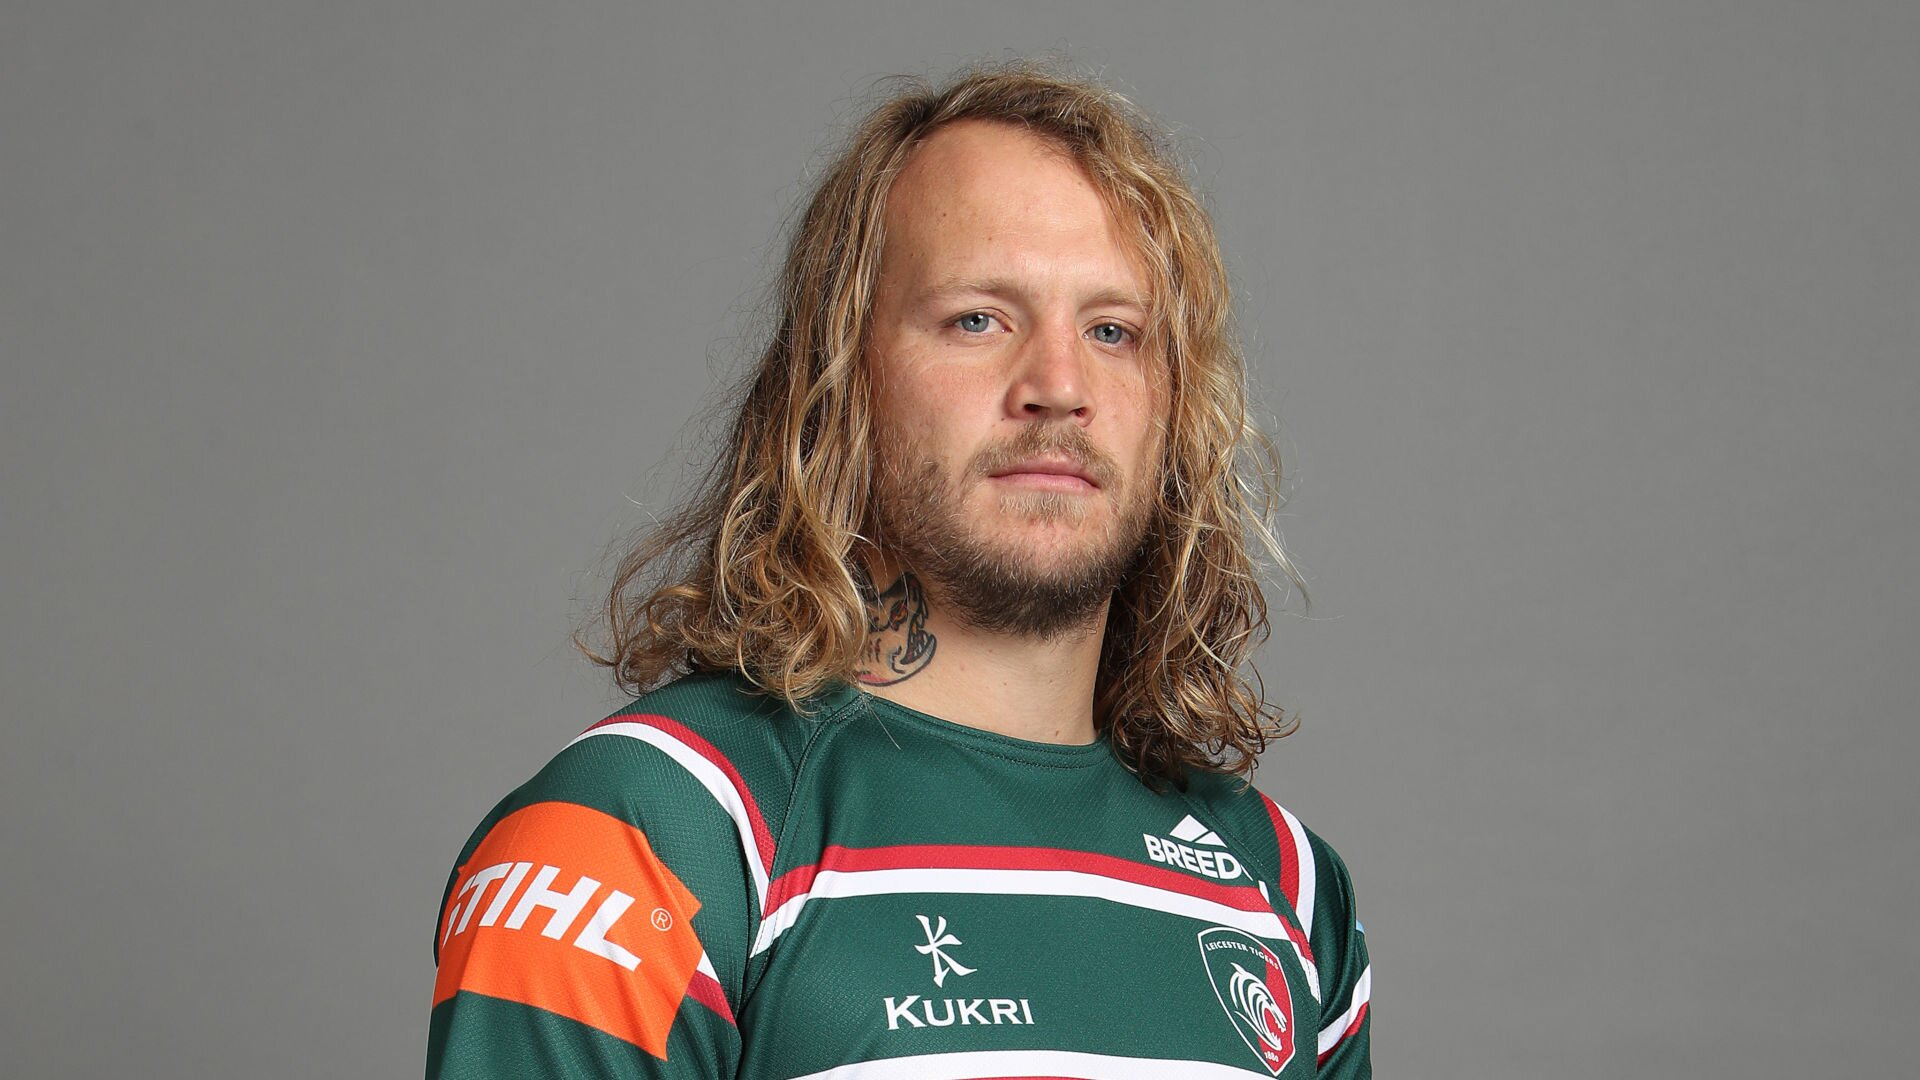 Tigers' scrumhalf Harrison to walk away from the game at 29